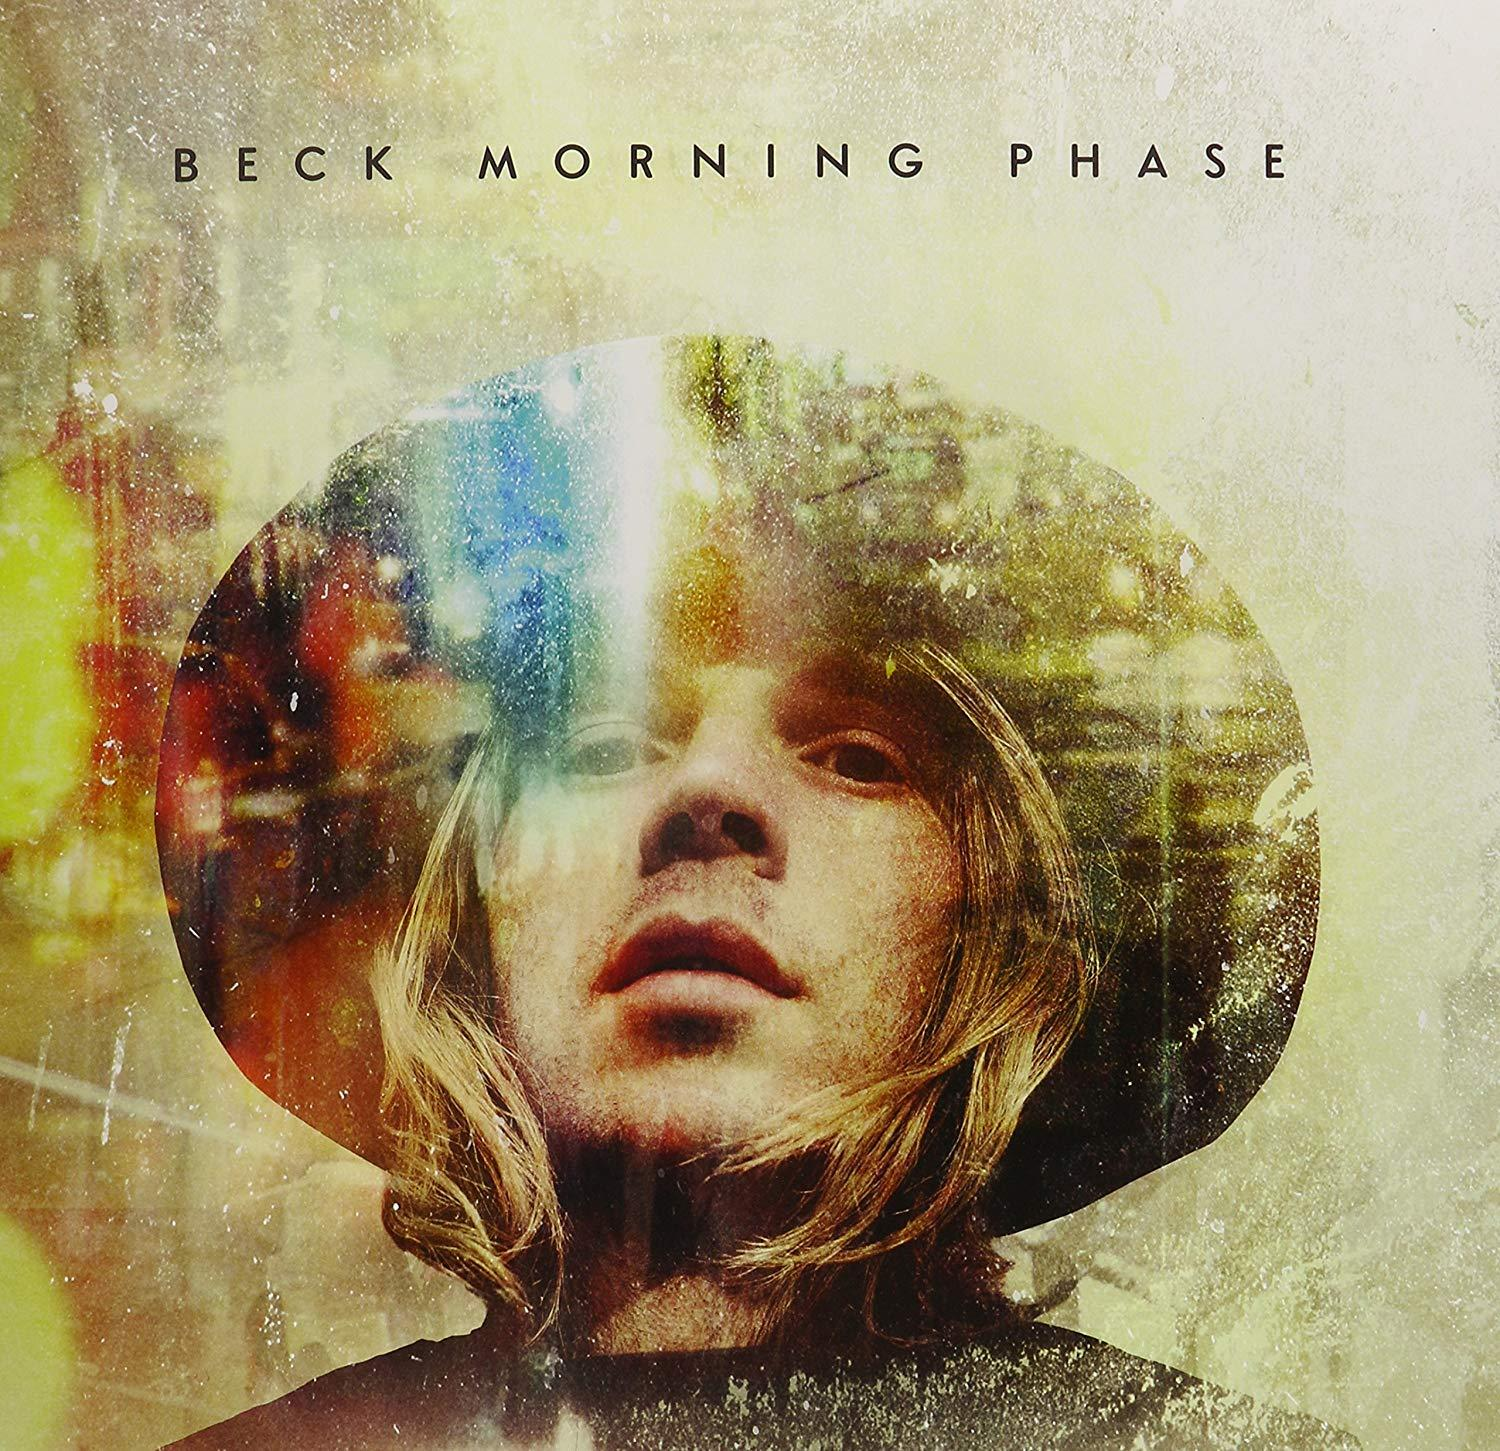 Beck Album Covers Ranked His Best Artwork From The 90s To Now Digital Arts